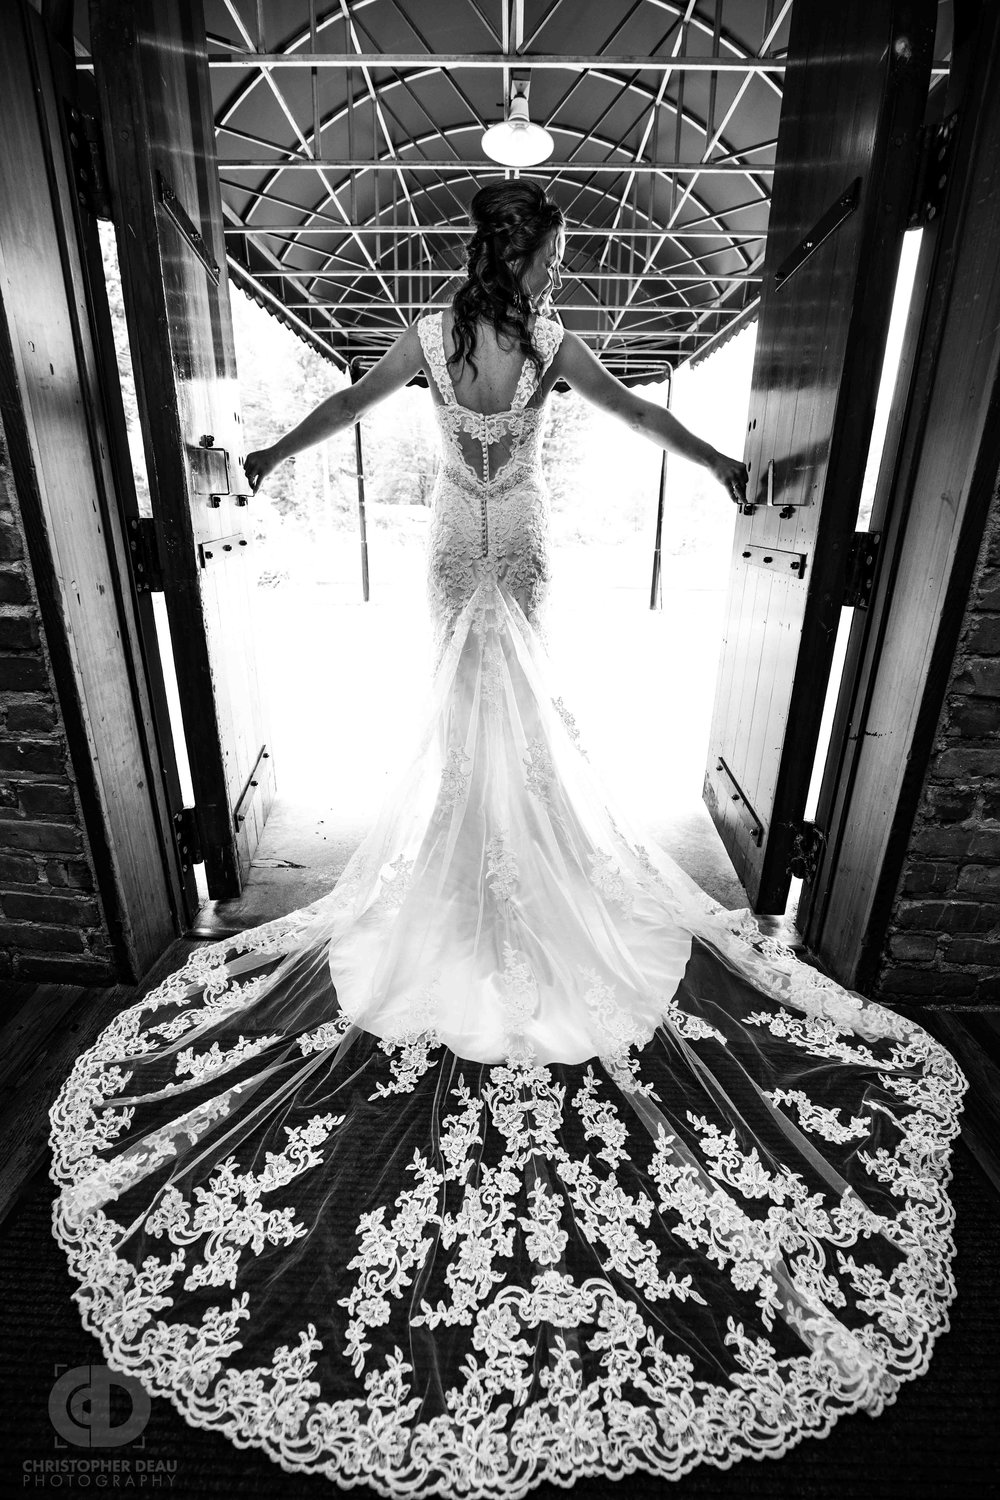 Stunning bride in flowing white lace dress standing in door way